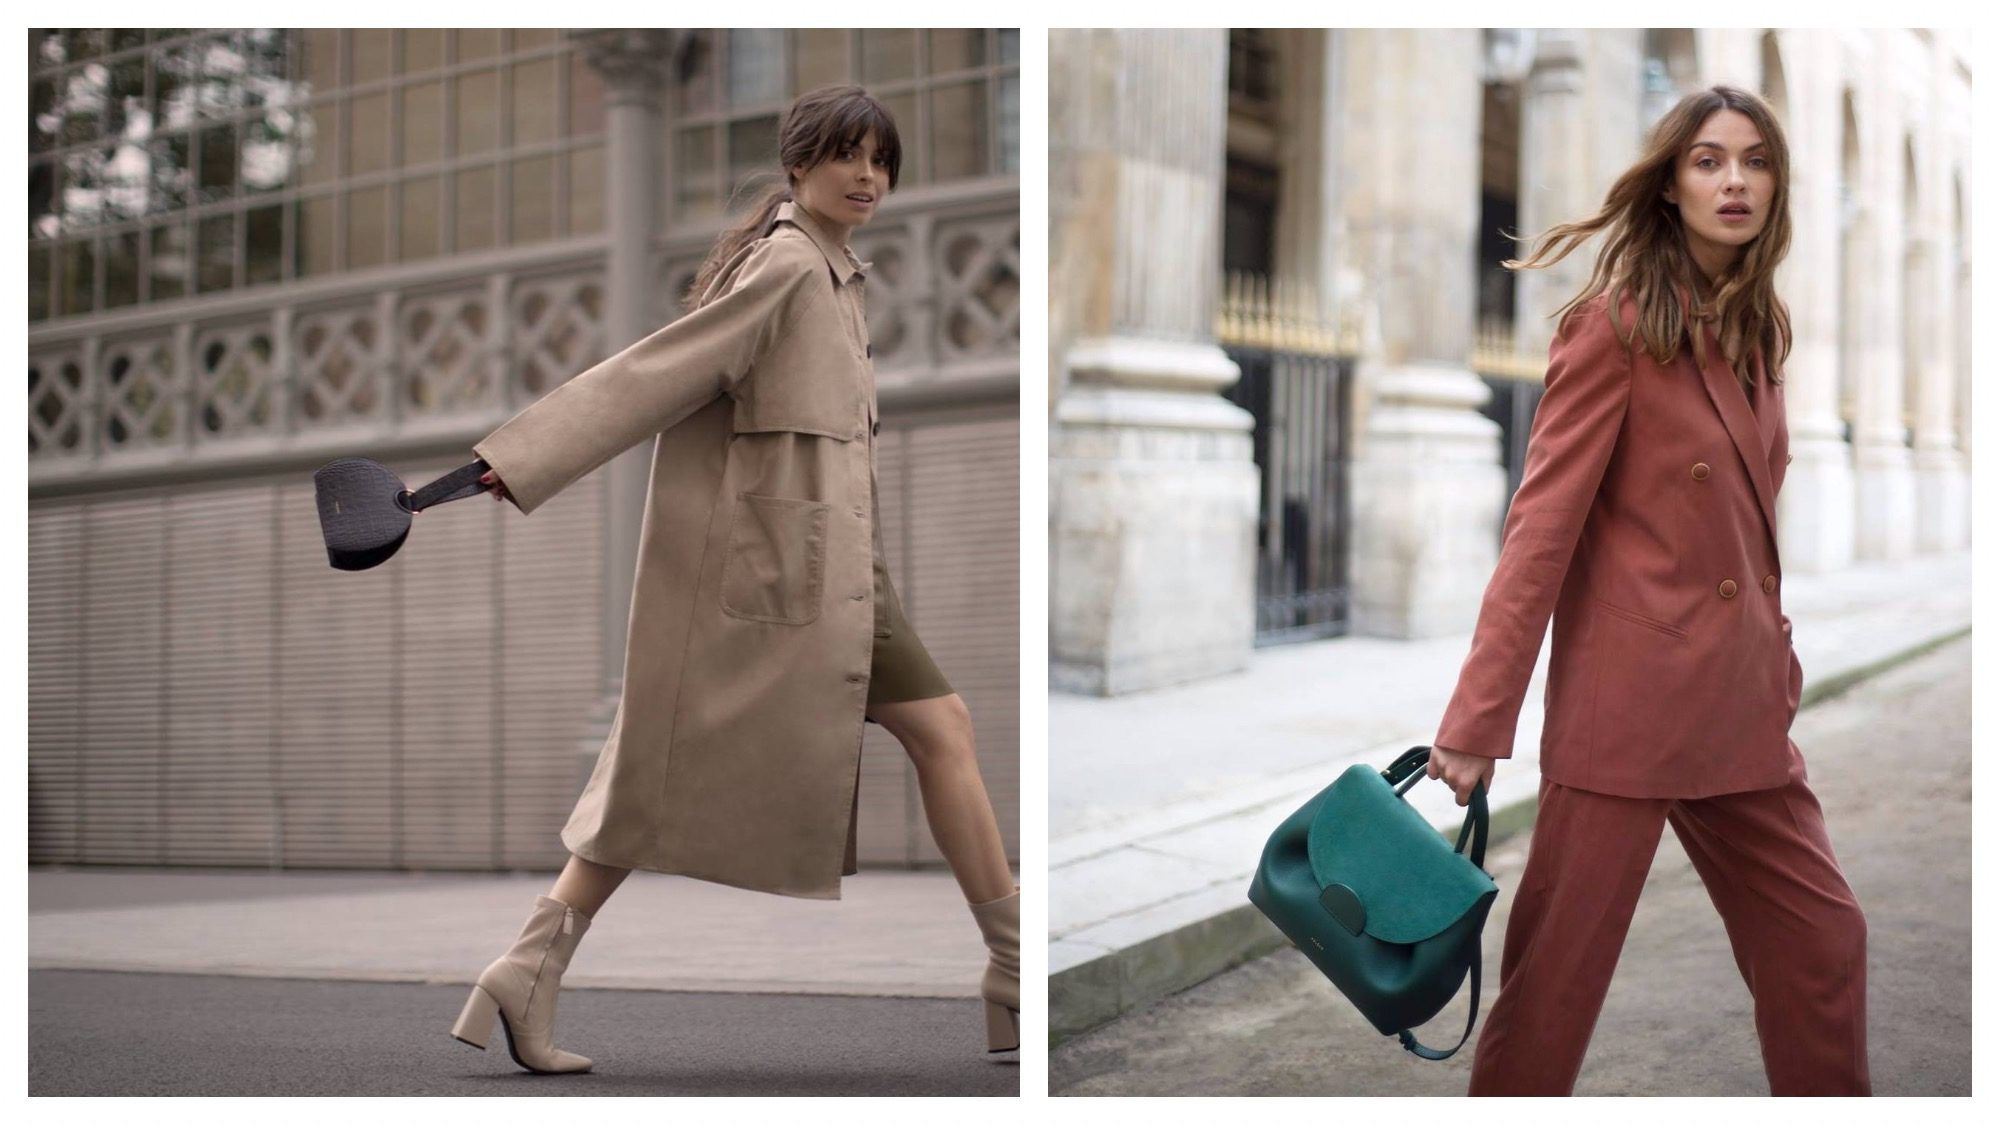 Parisian fashion style is about looking effortlessly chic, like this brunette wearing a beige mac and matching square-heeled mid-calf boots with a knee-length skirt (left) or this model wearing a loose-fitting terracotta suit paired with a turquoise leather handbag (right).